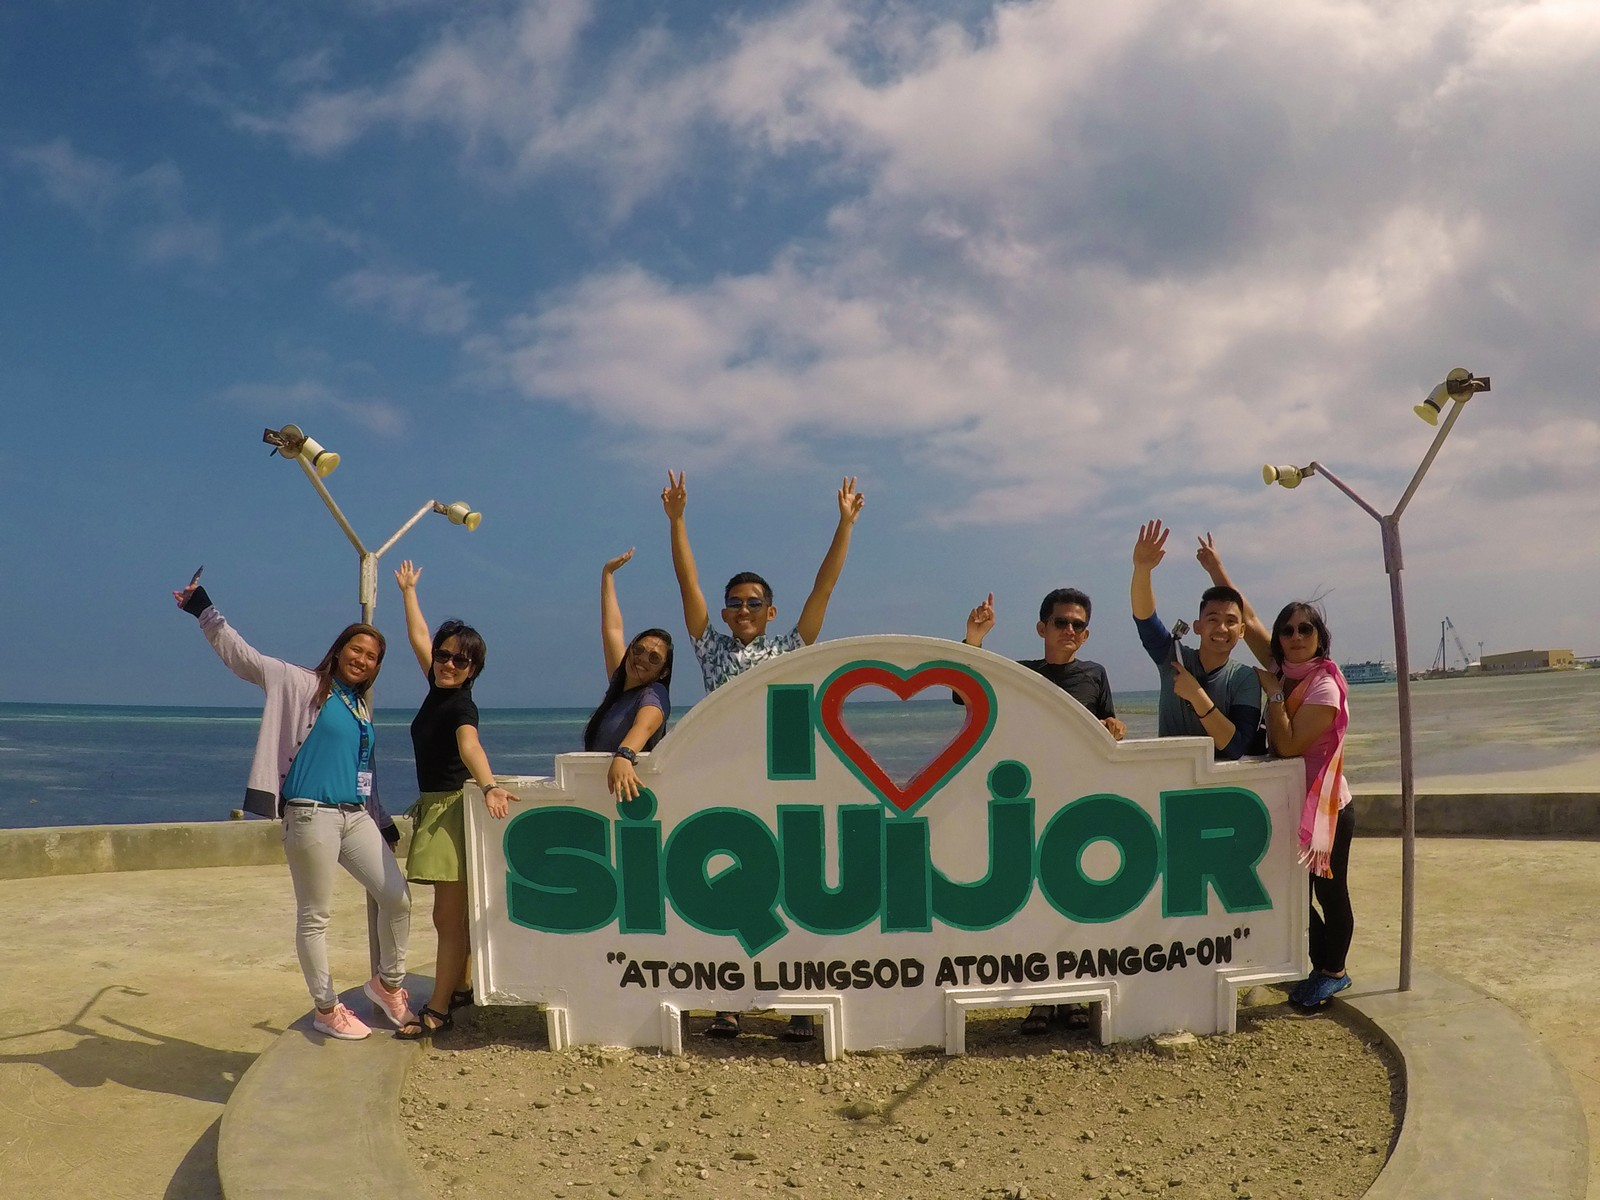 Siquijor Island Full-Day Sightseeing from Dumaguete | With Hotel Pickup & Drop-off